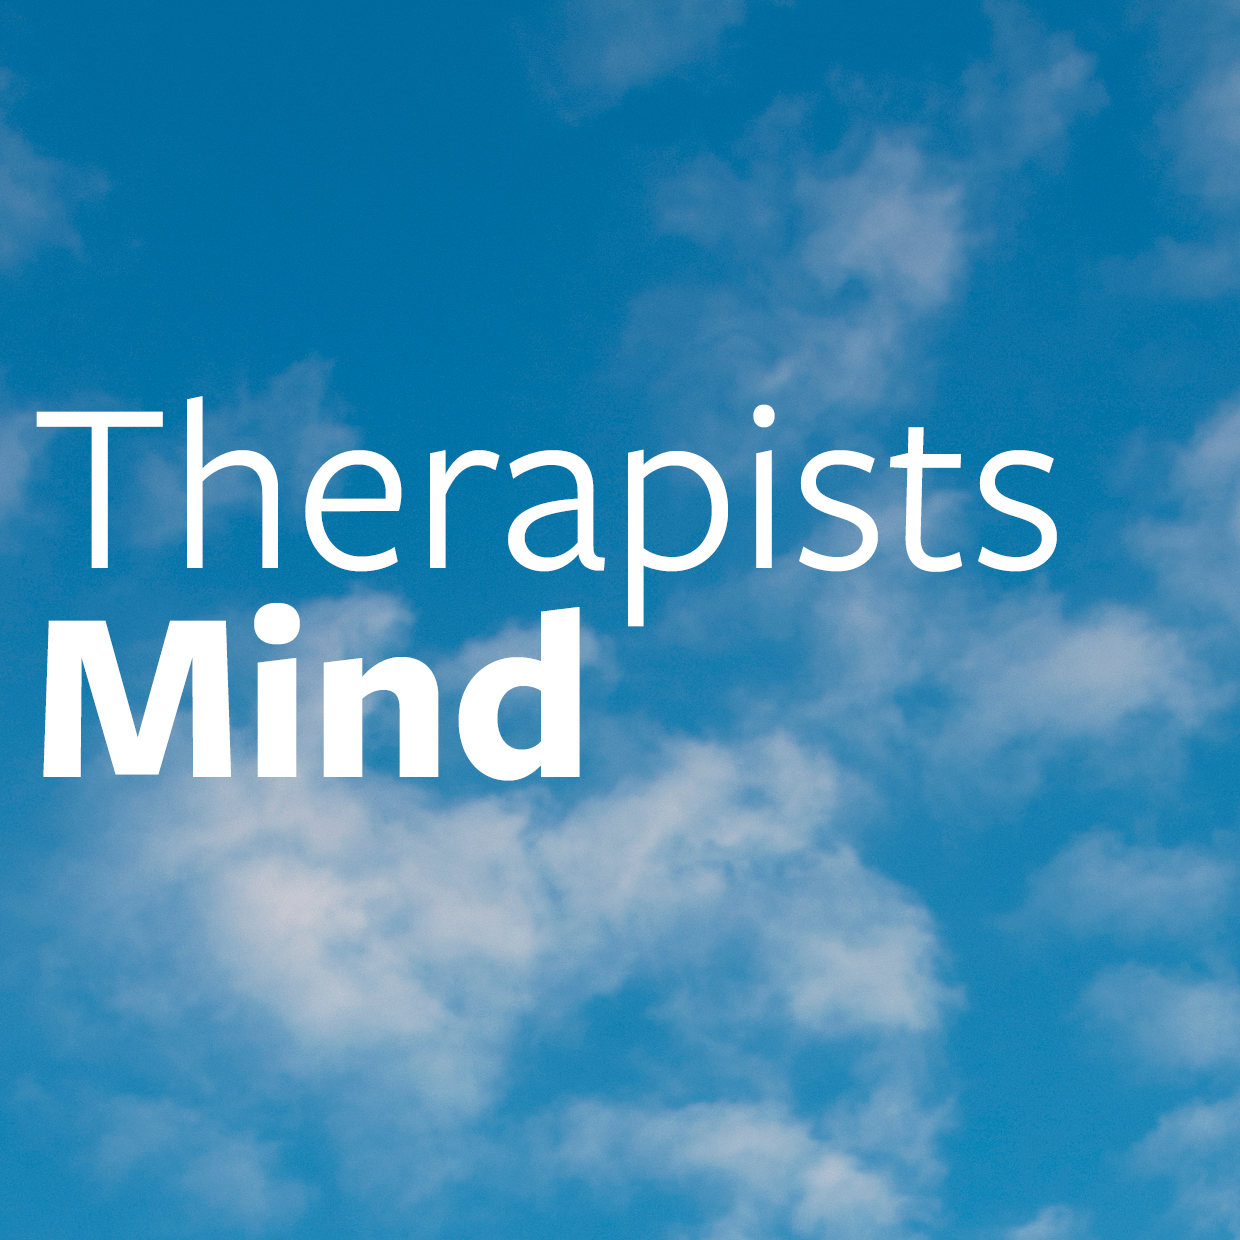 Image gateway to Therapeutic services  for the mind